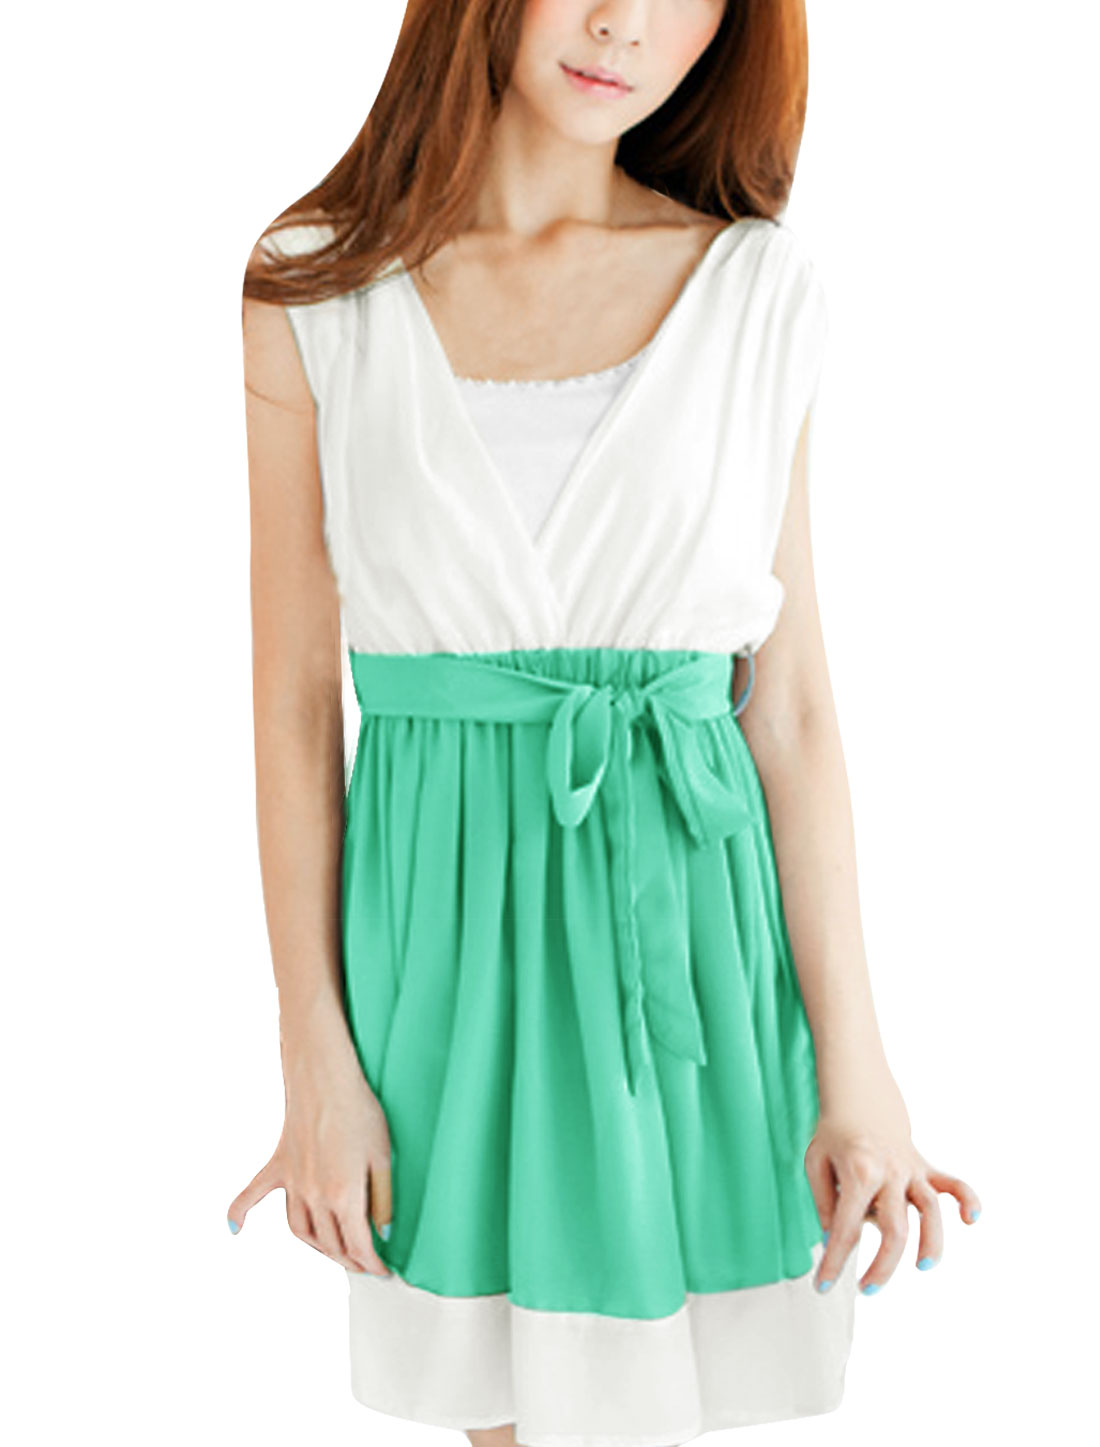 Ladies Contrast Color Green White Elastic Waist Casual Dress M w Tube Top